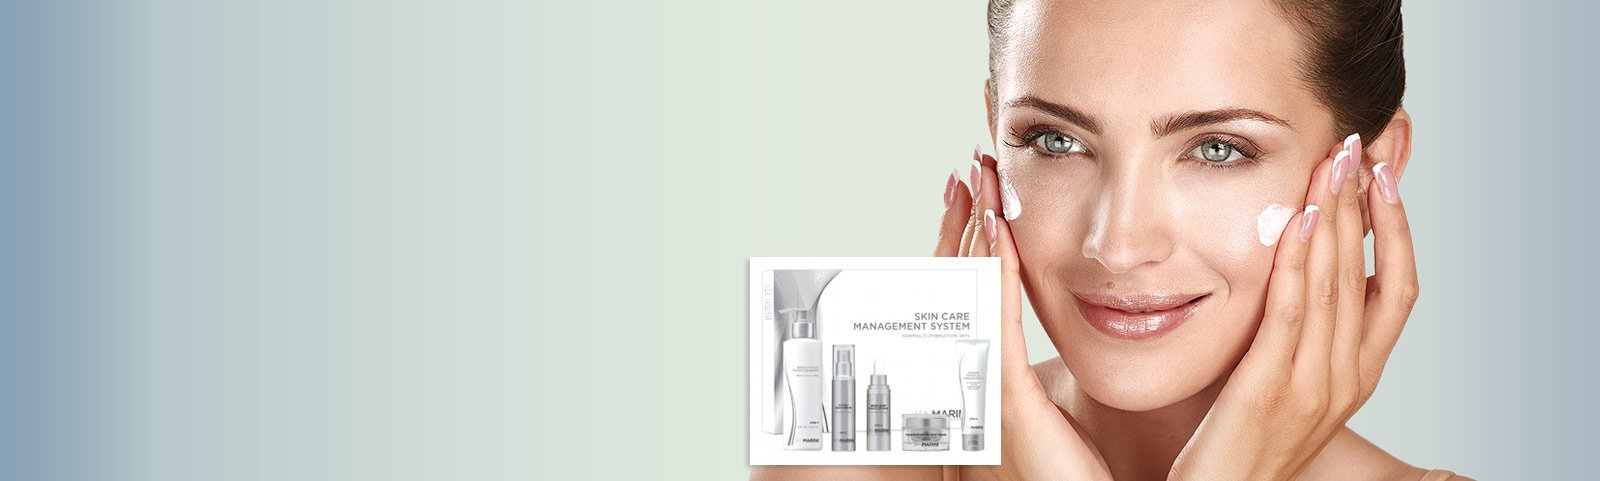 Buy Quality Skincare Products Online